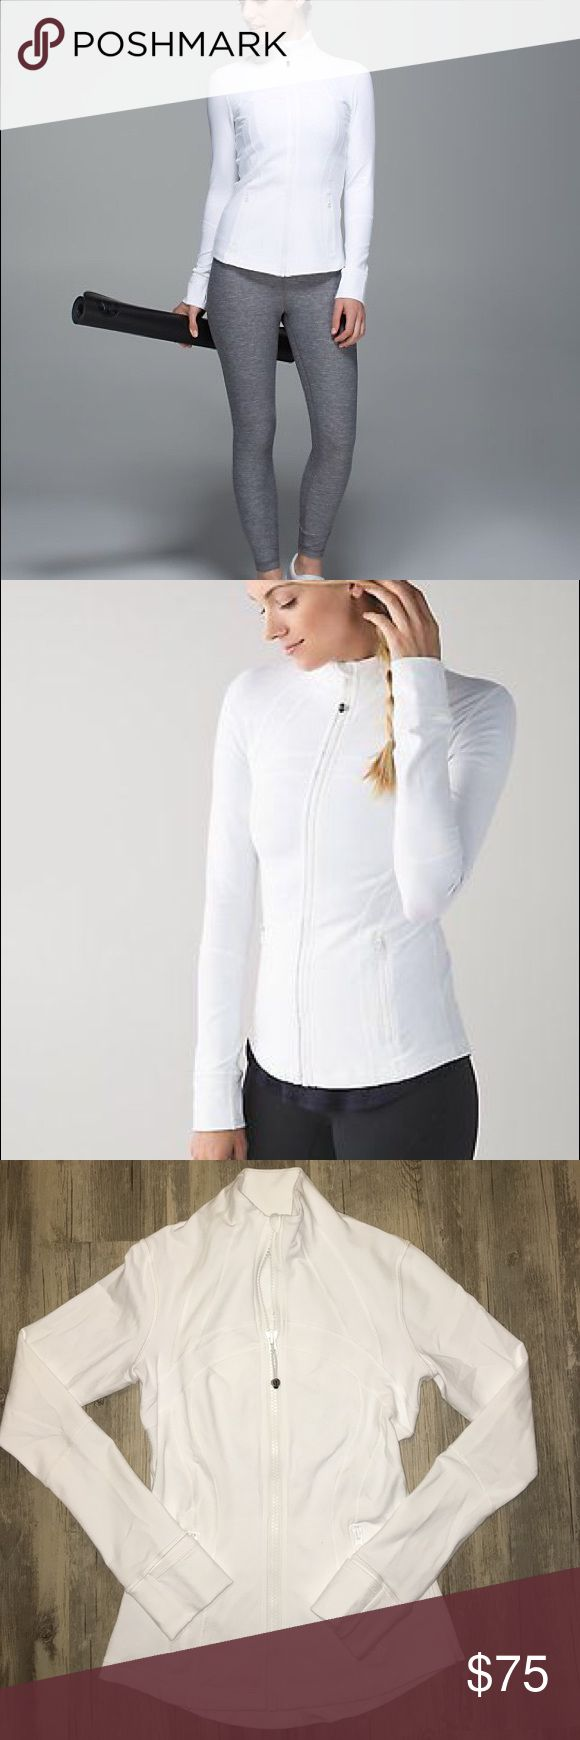 Lululemon white define jacket 4 Like new . Only wore a few times . Excellent condition . Lululemon size 4. White define jacket . Sold out . Perfect with grey or black pants . Winter white lululemon athletica Jackets & Coats